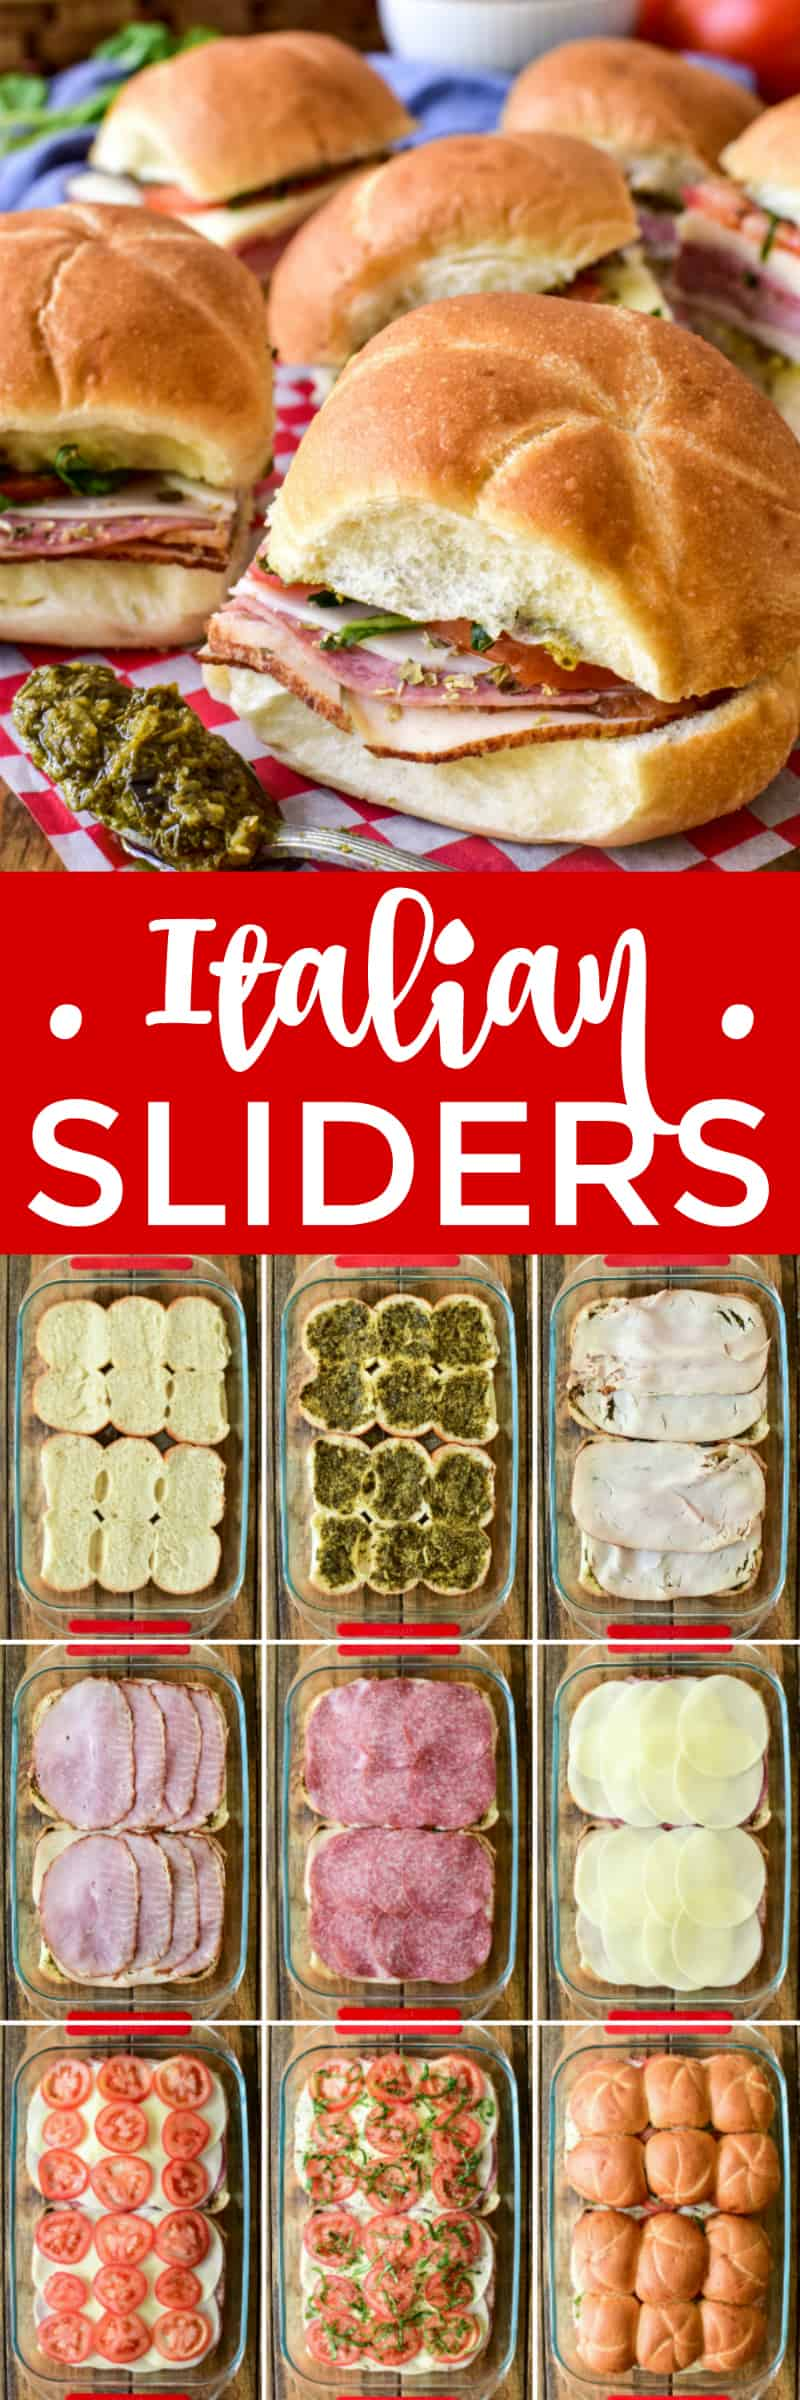 Collage image of Italian Sliders with process shots